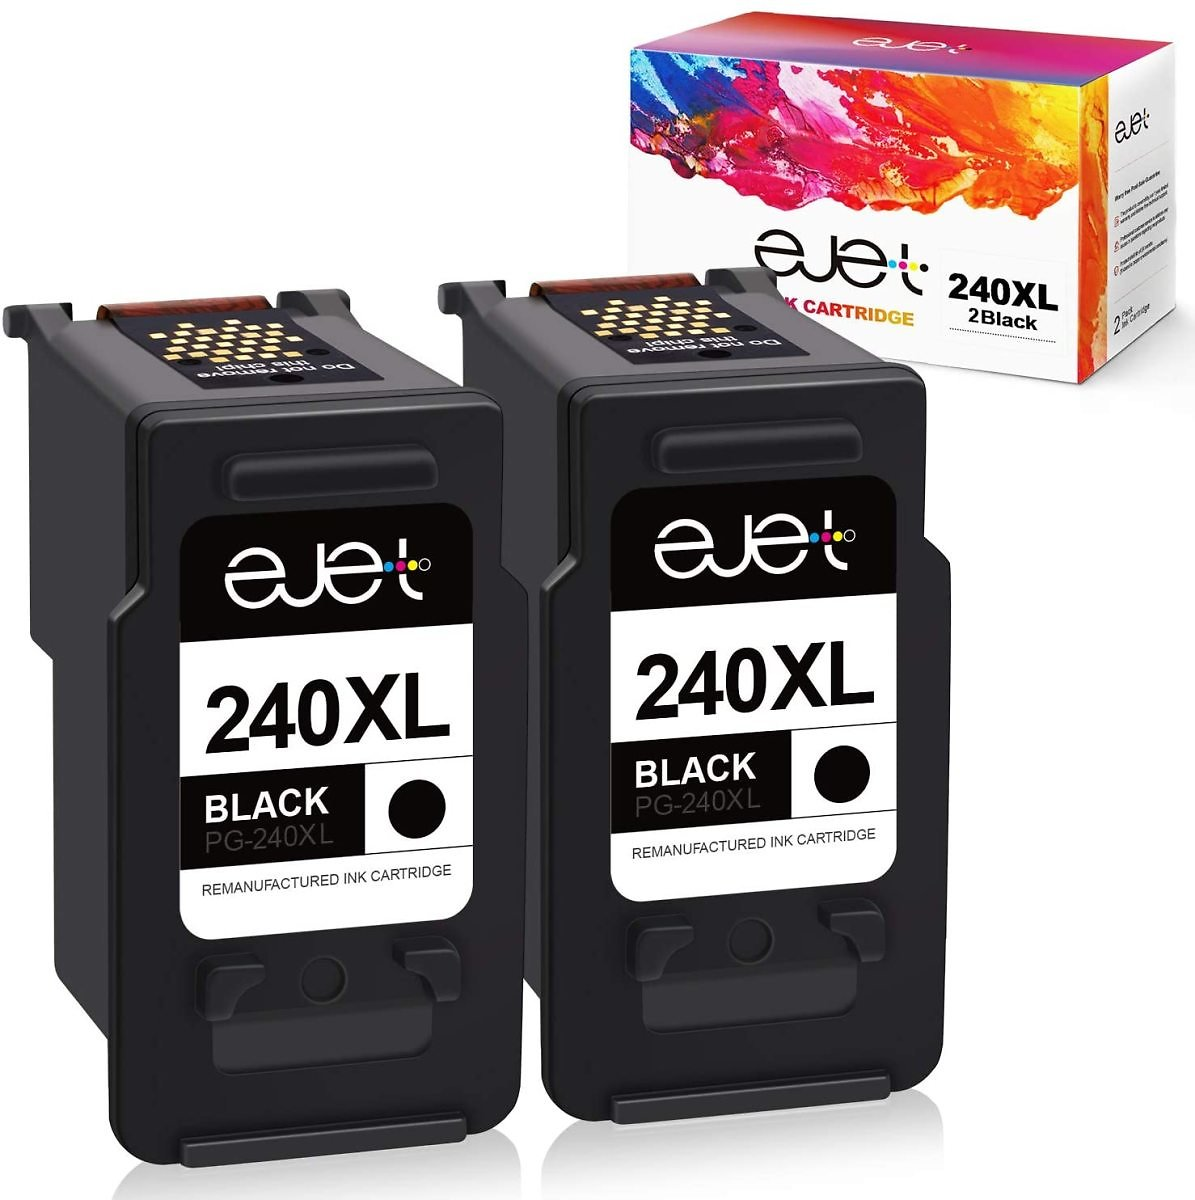 Ejet Remanufactured Ink Cartridge Replacement for Canon and Pixma